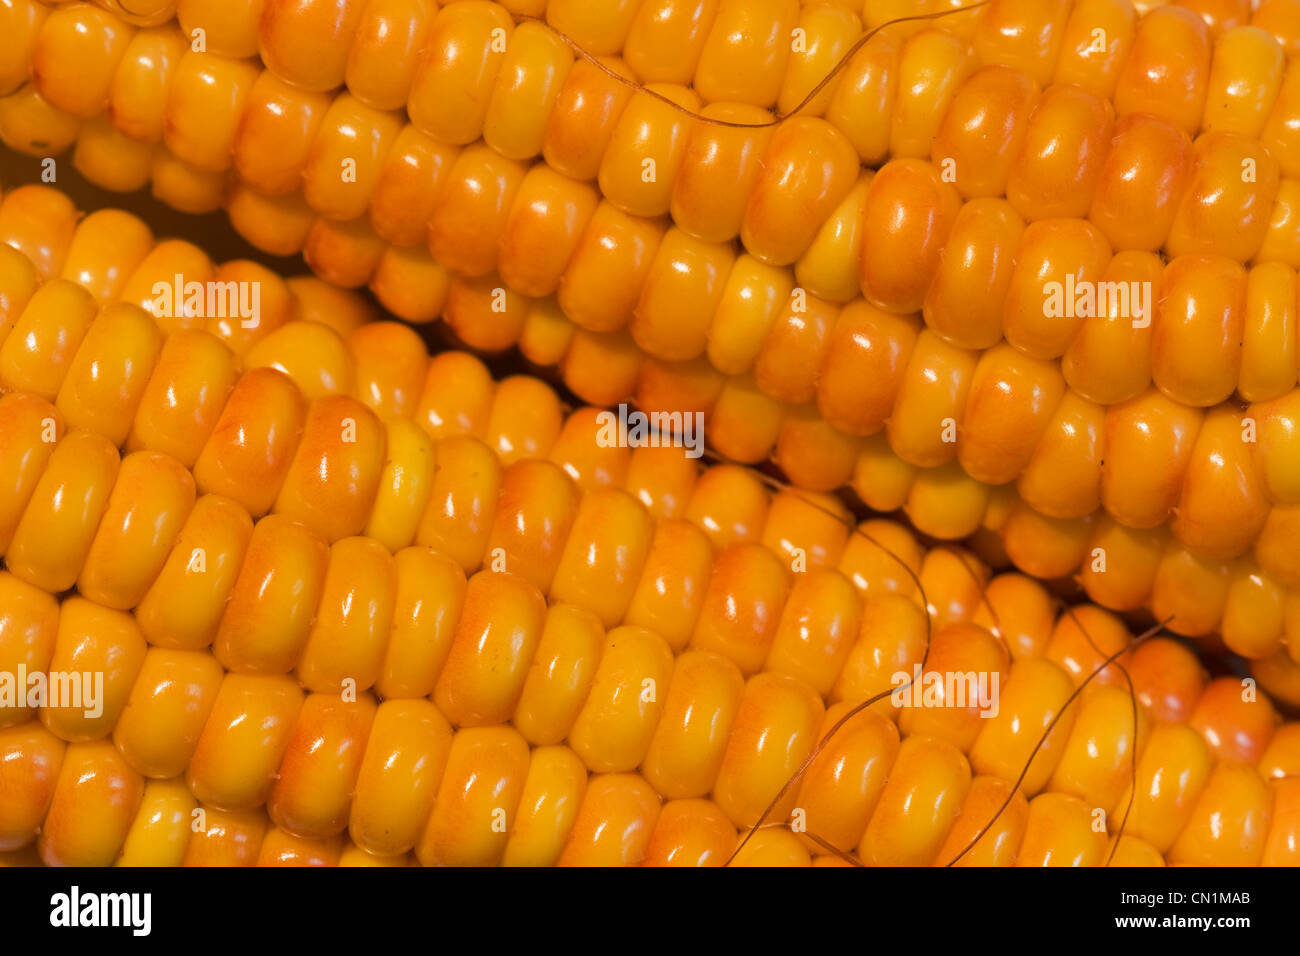 Two maize ears - Stock Image